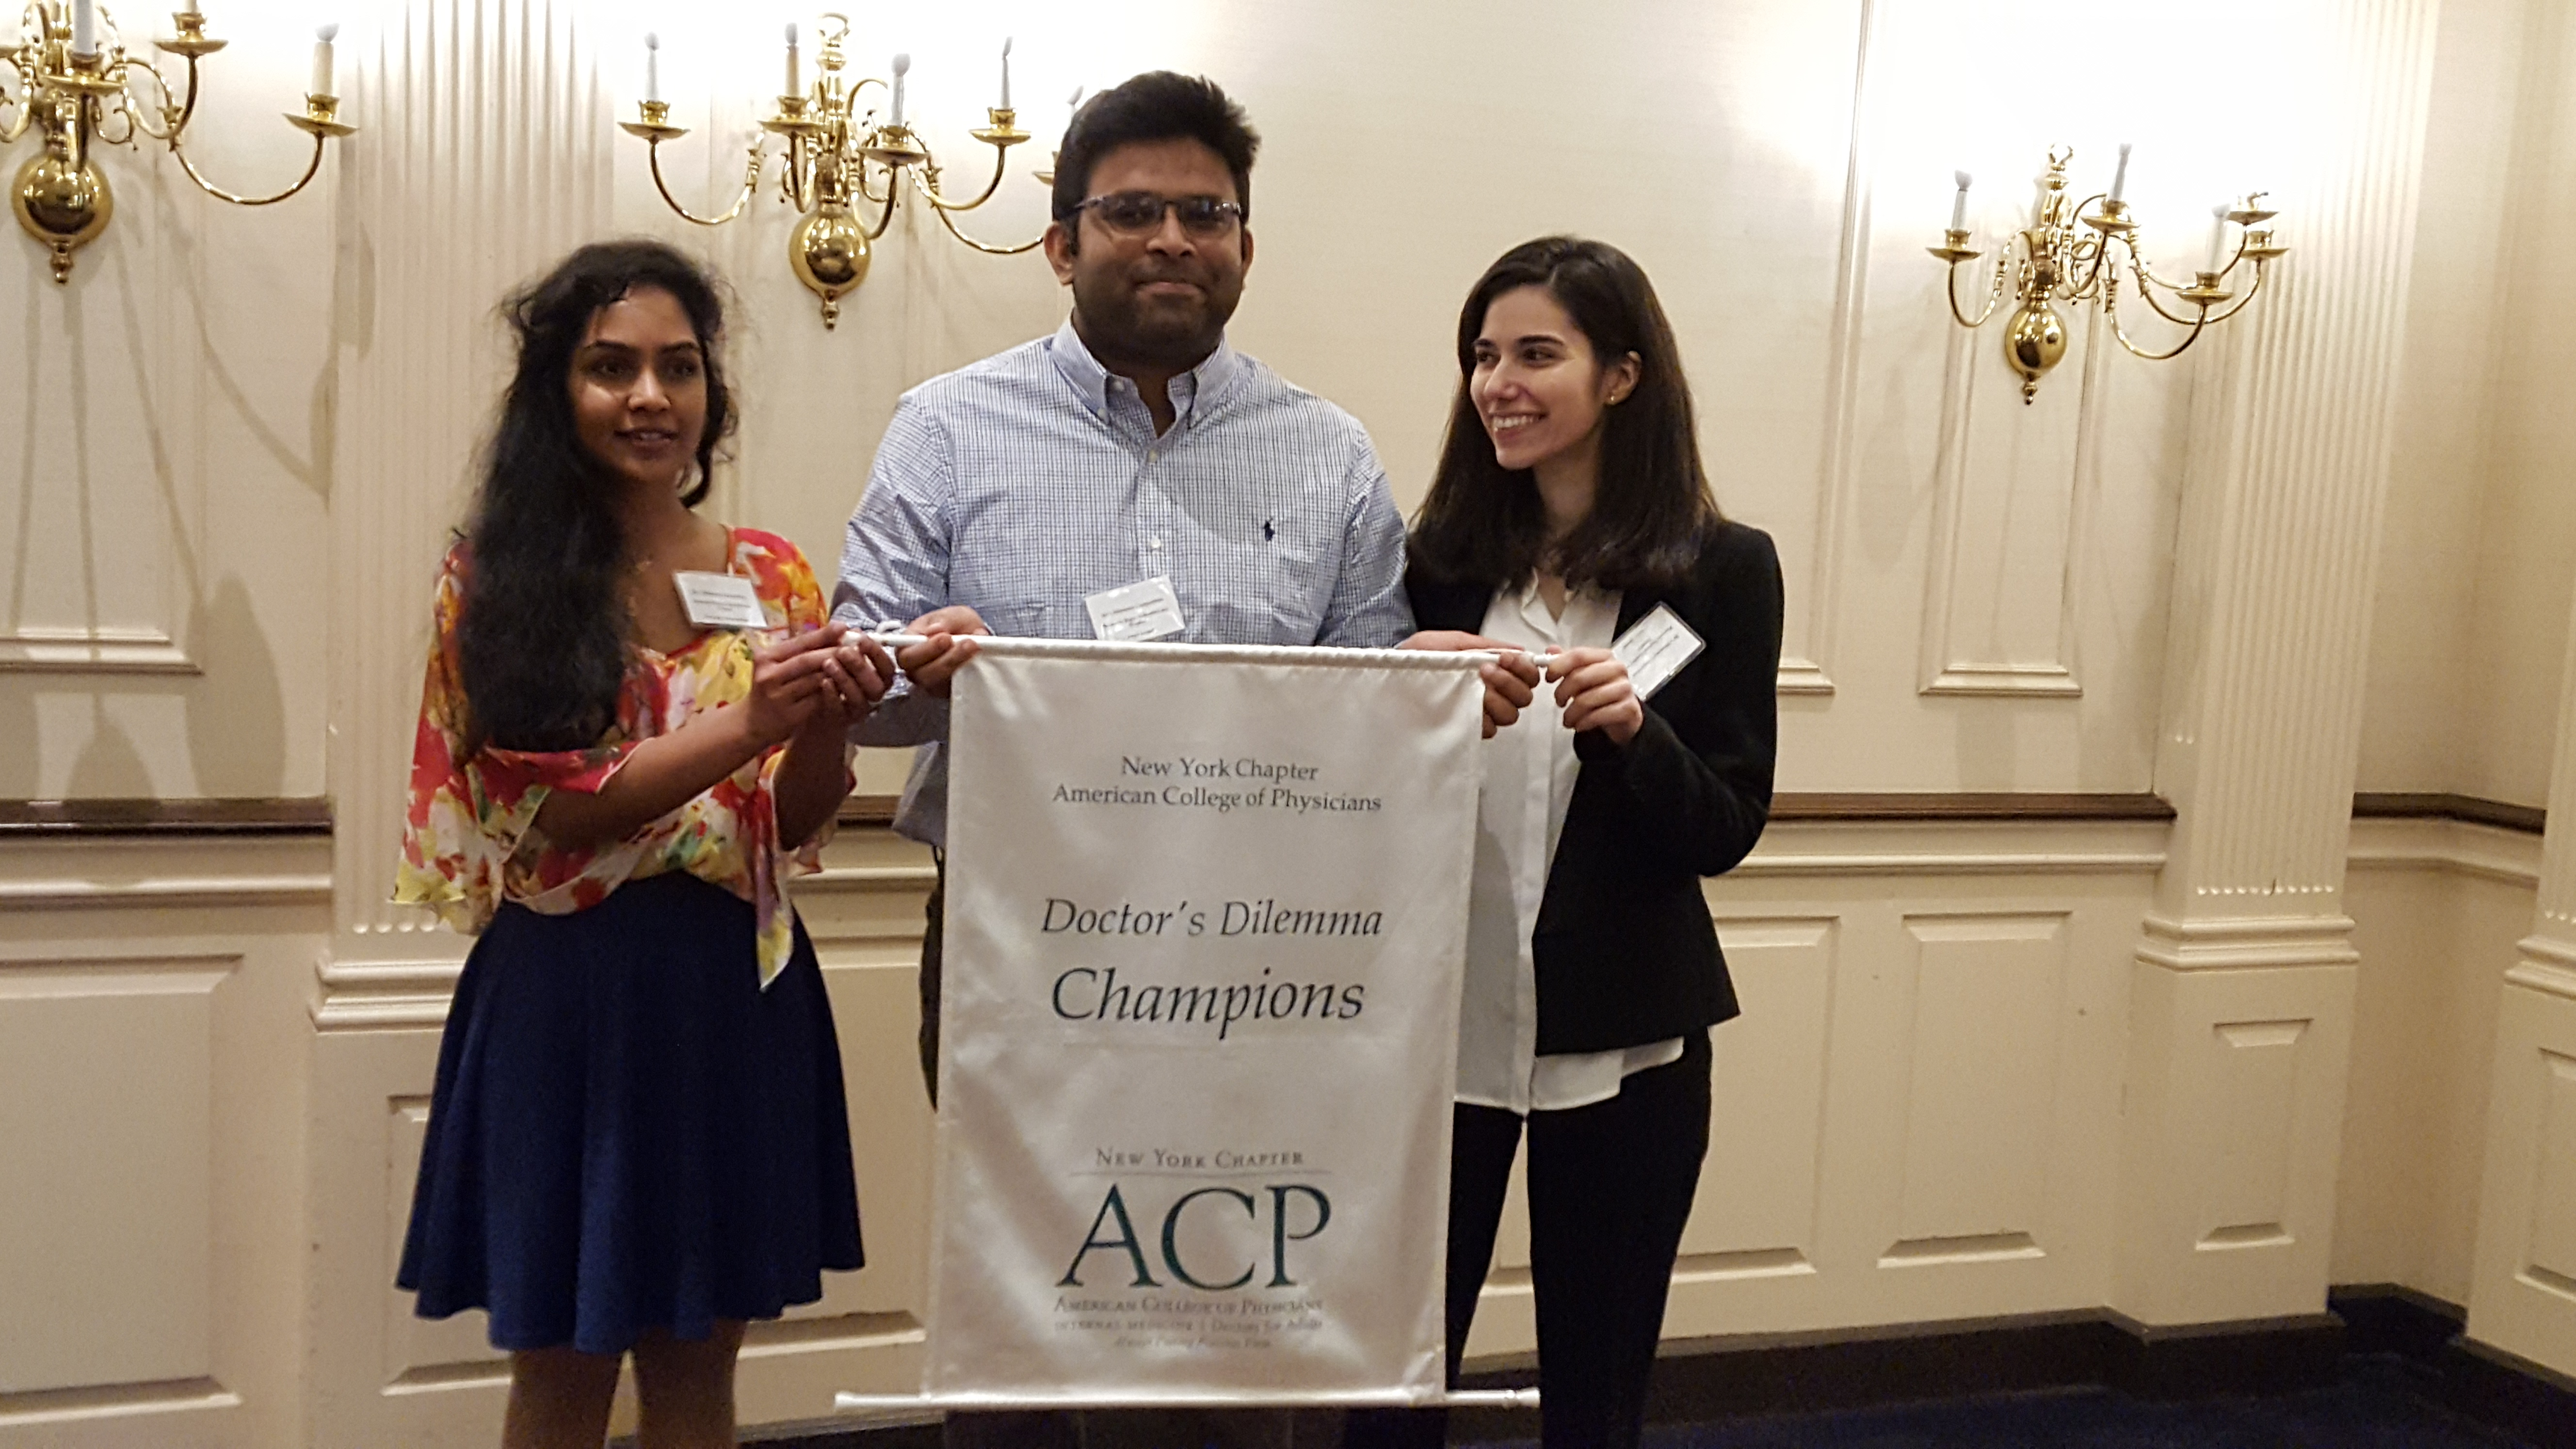 Residents & Fellows - New York Chapter of the American